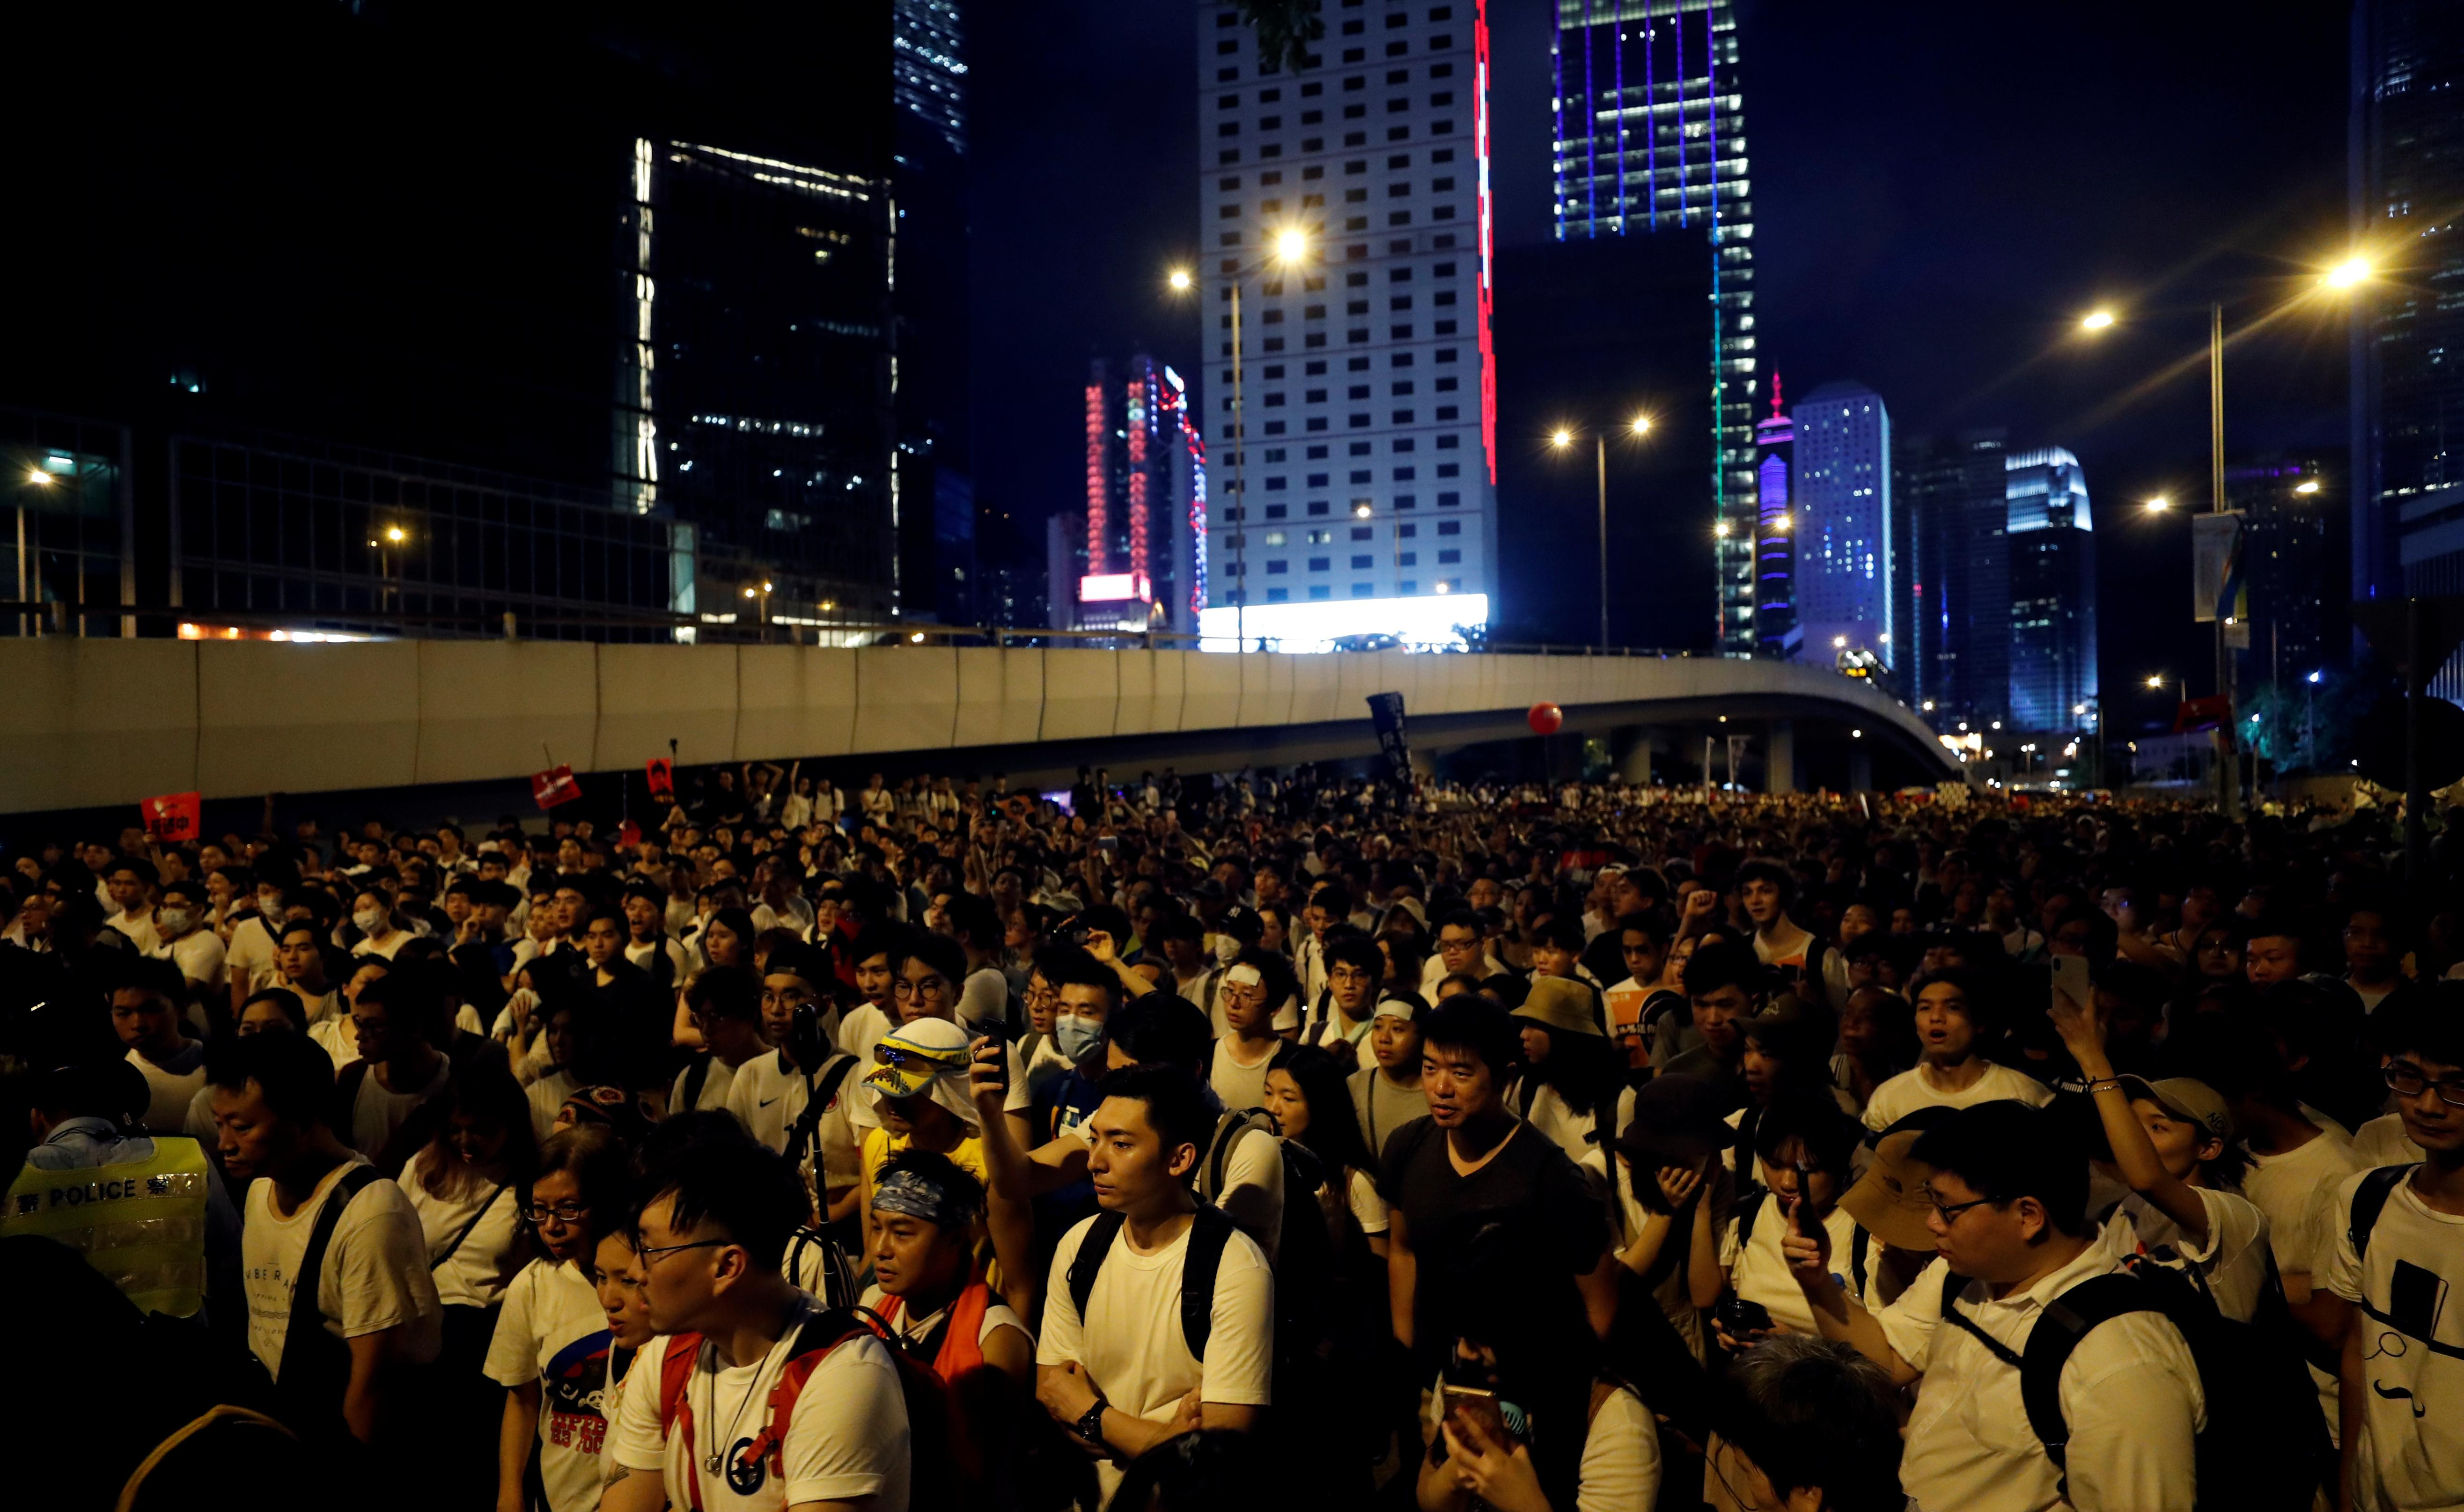 Картинки по запросу Hong Kong plunged into political crisis after huge protest against extradition law